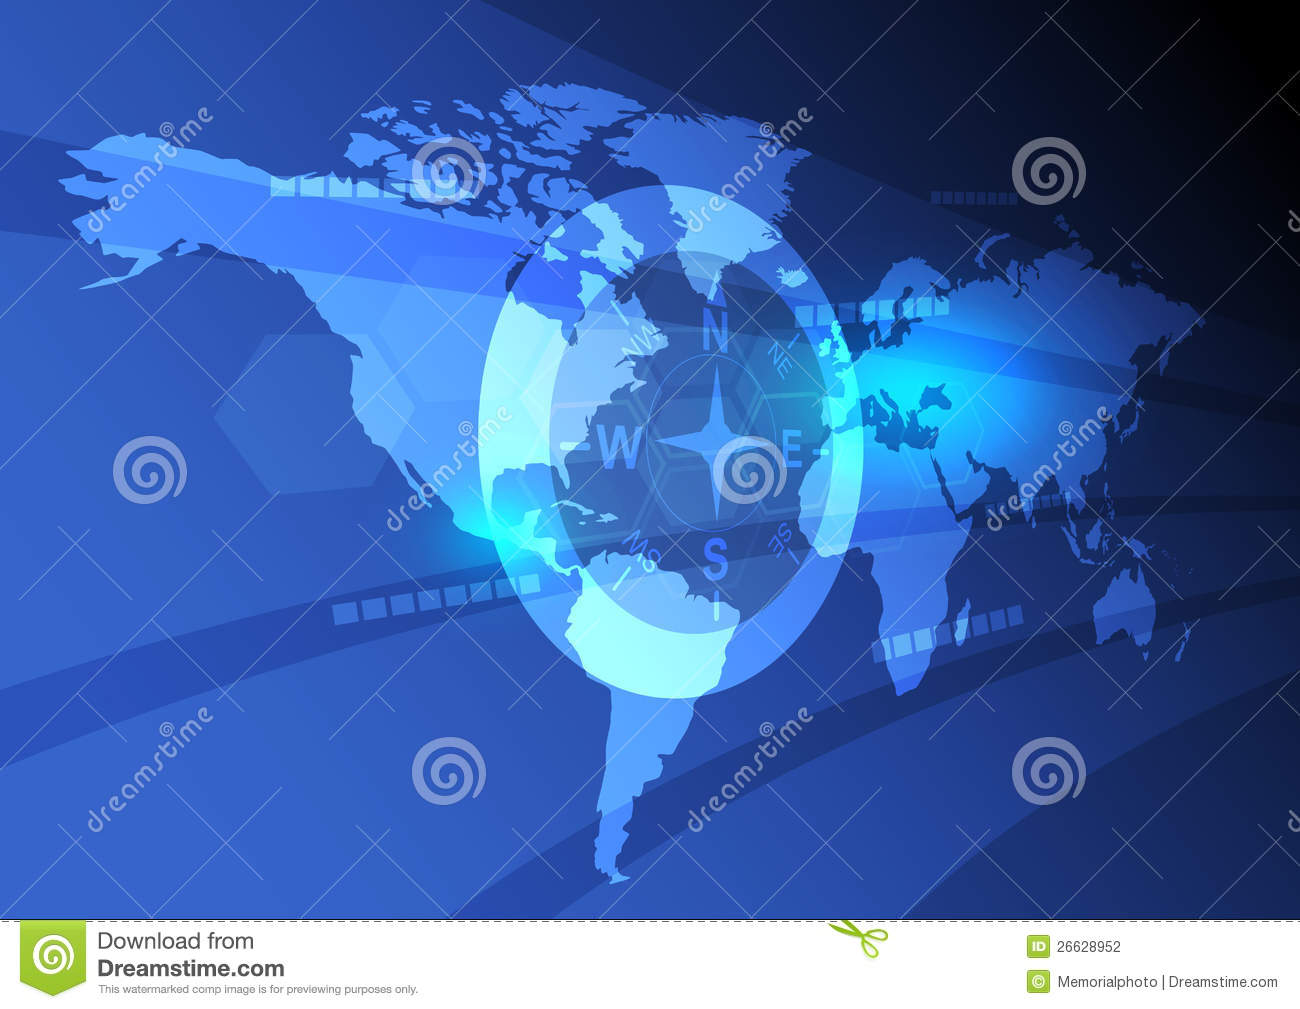 Digital world map background stock vector illustration of future digital world map background gumiabroncs